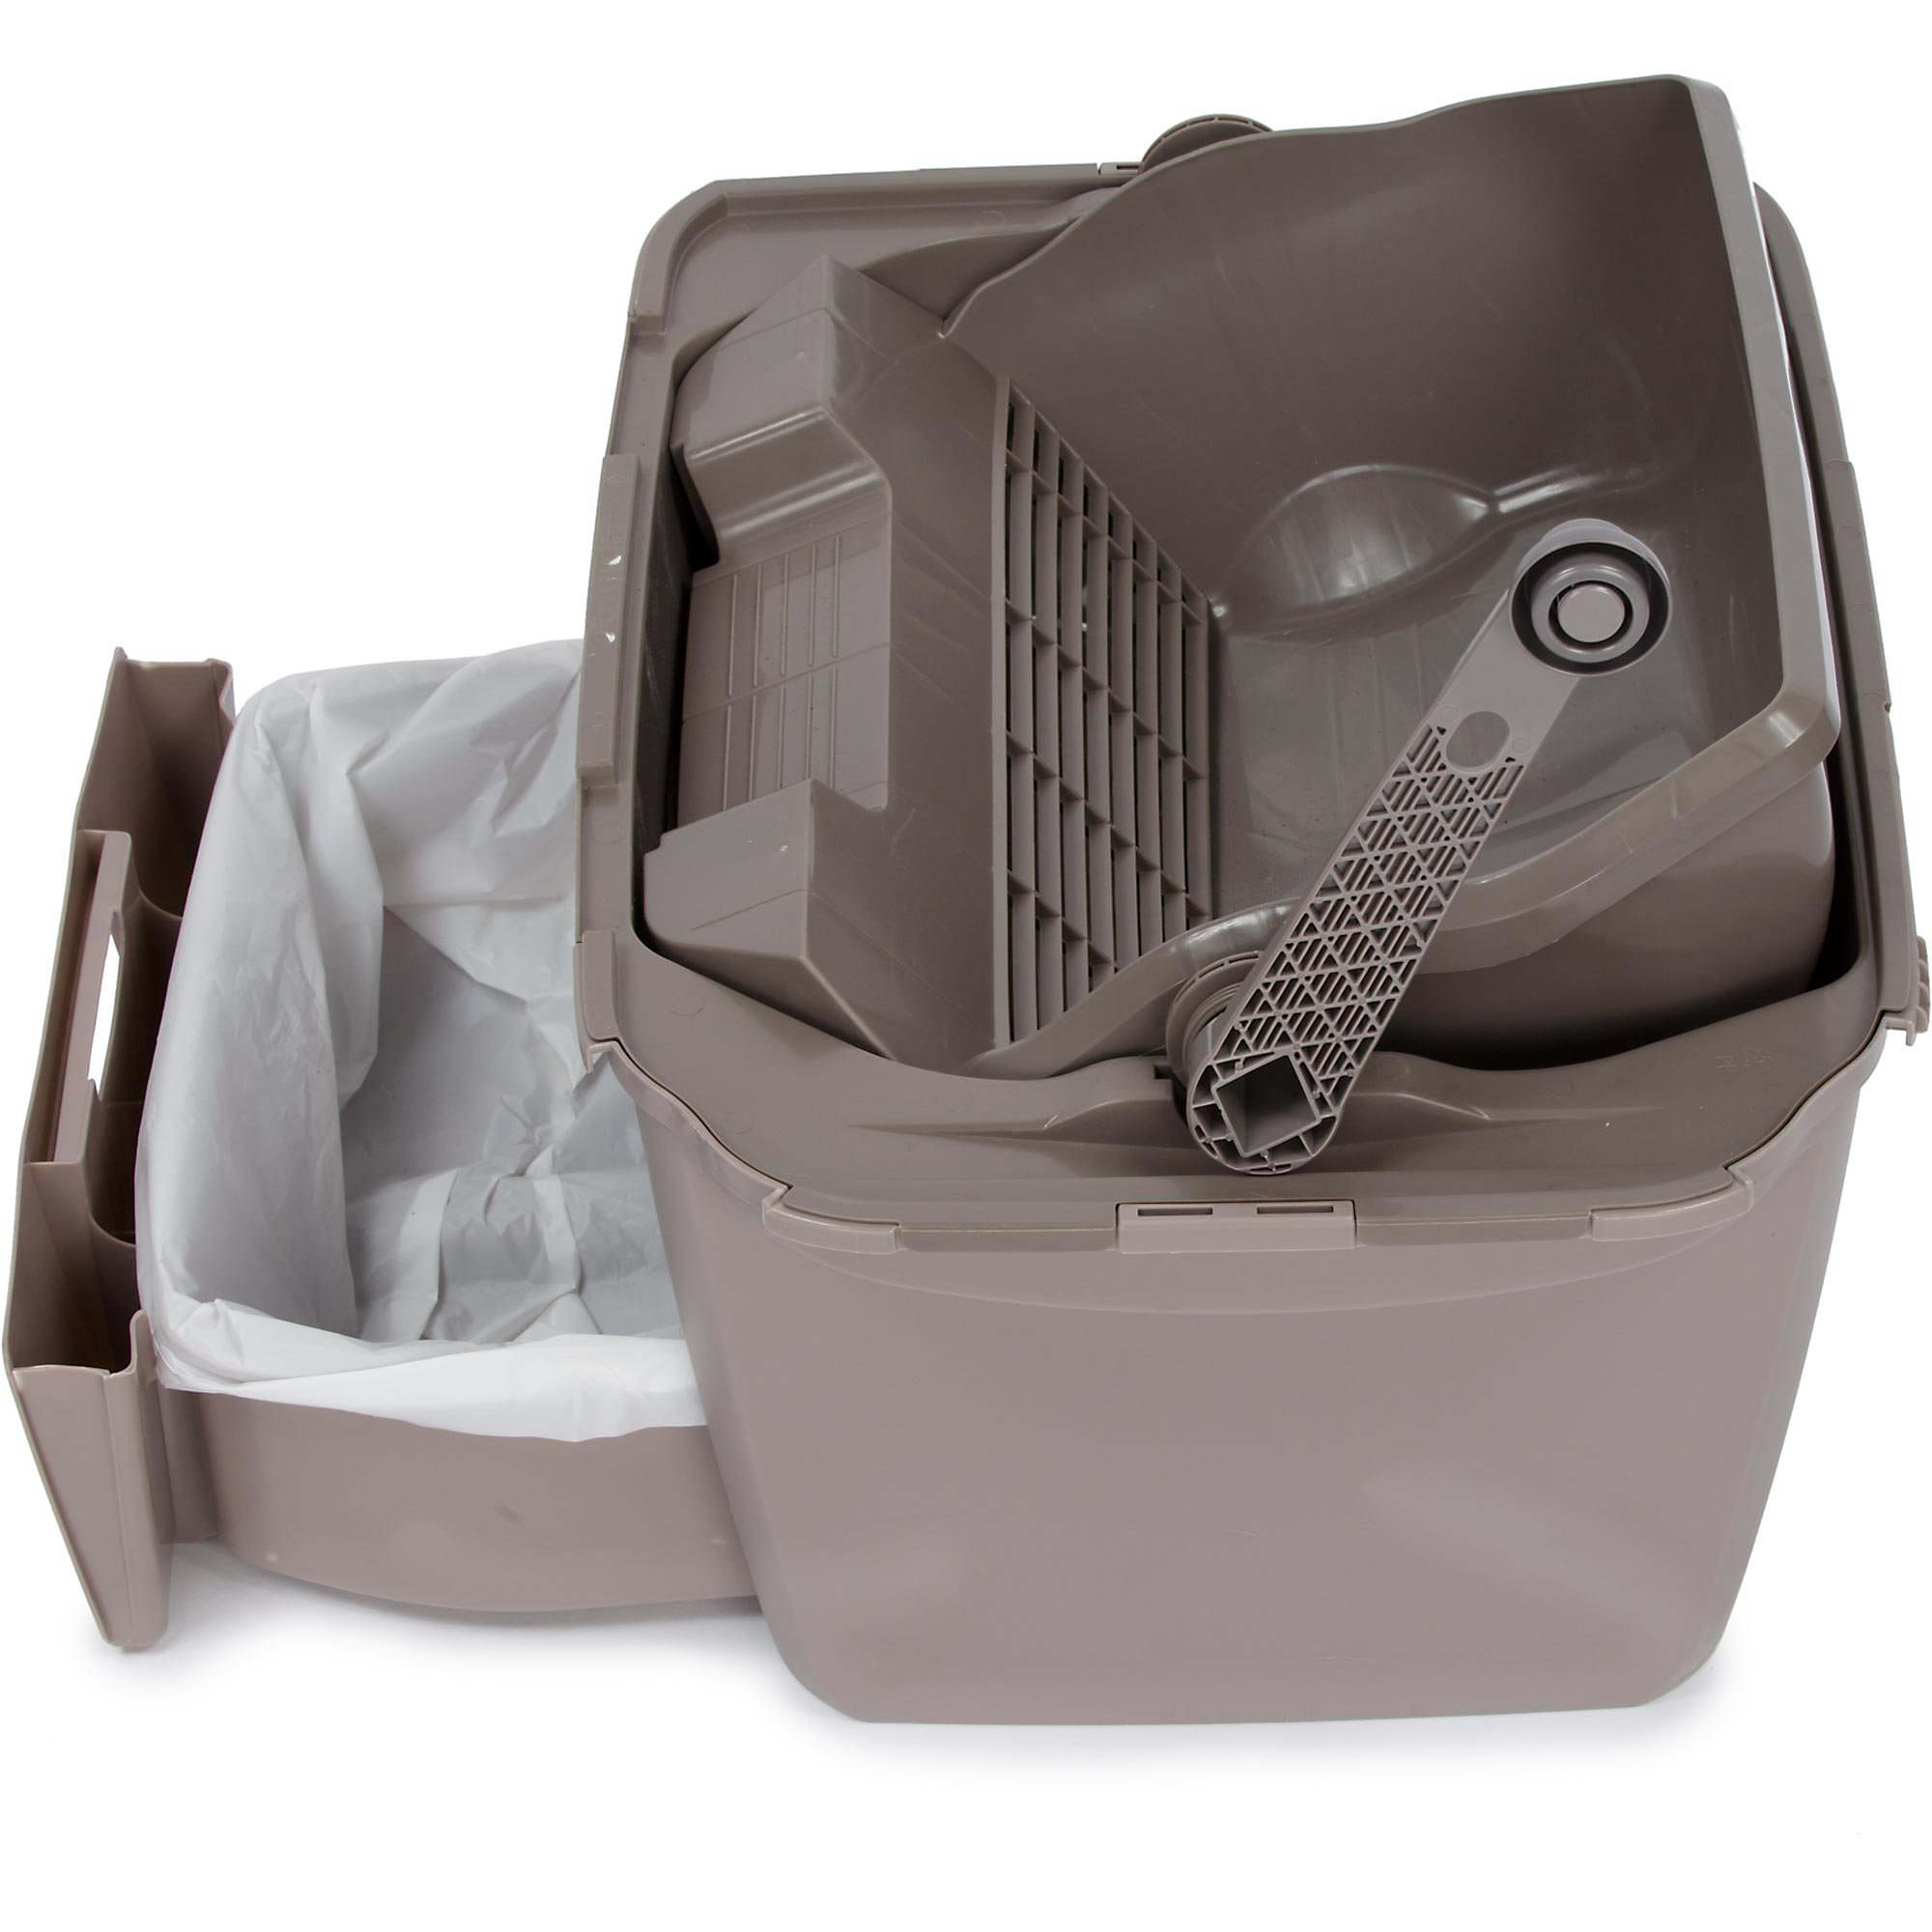 Catit Cat Litter Box